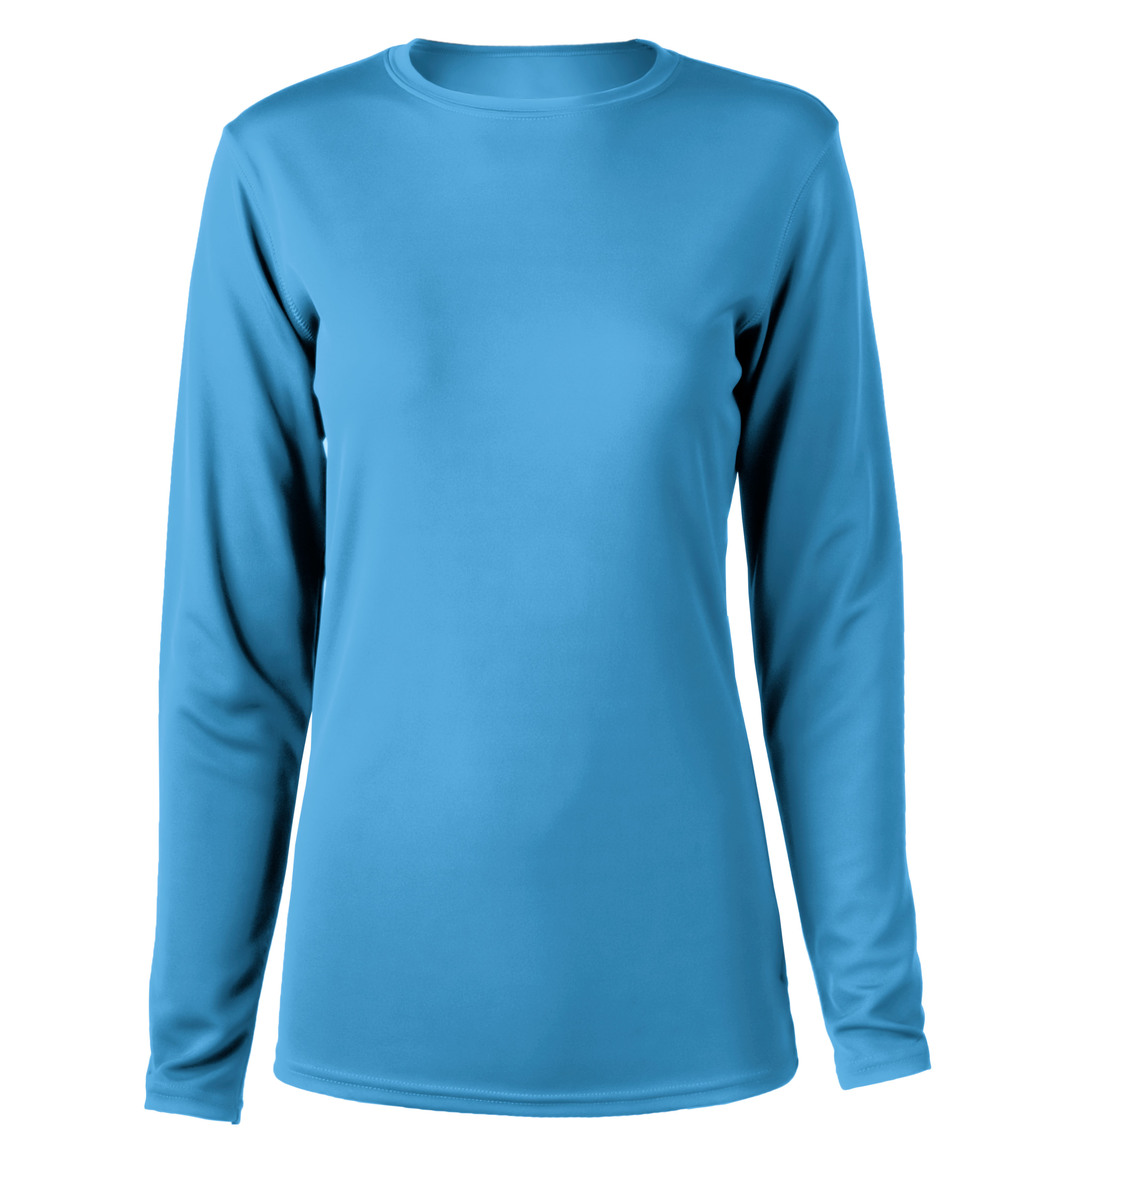 Zorrel Z6051 - Women's Chicago Long Sleeve Training ...